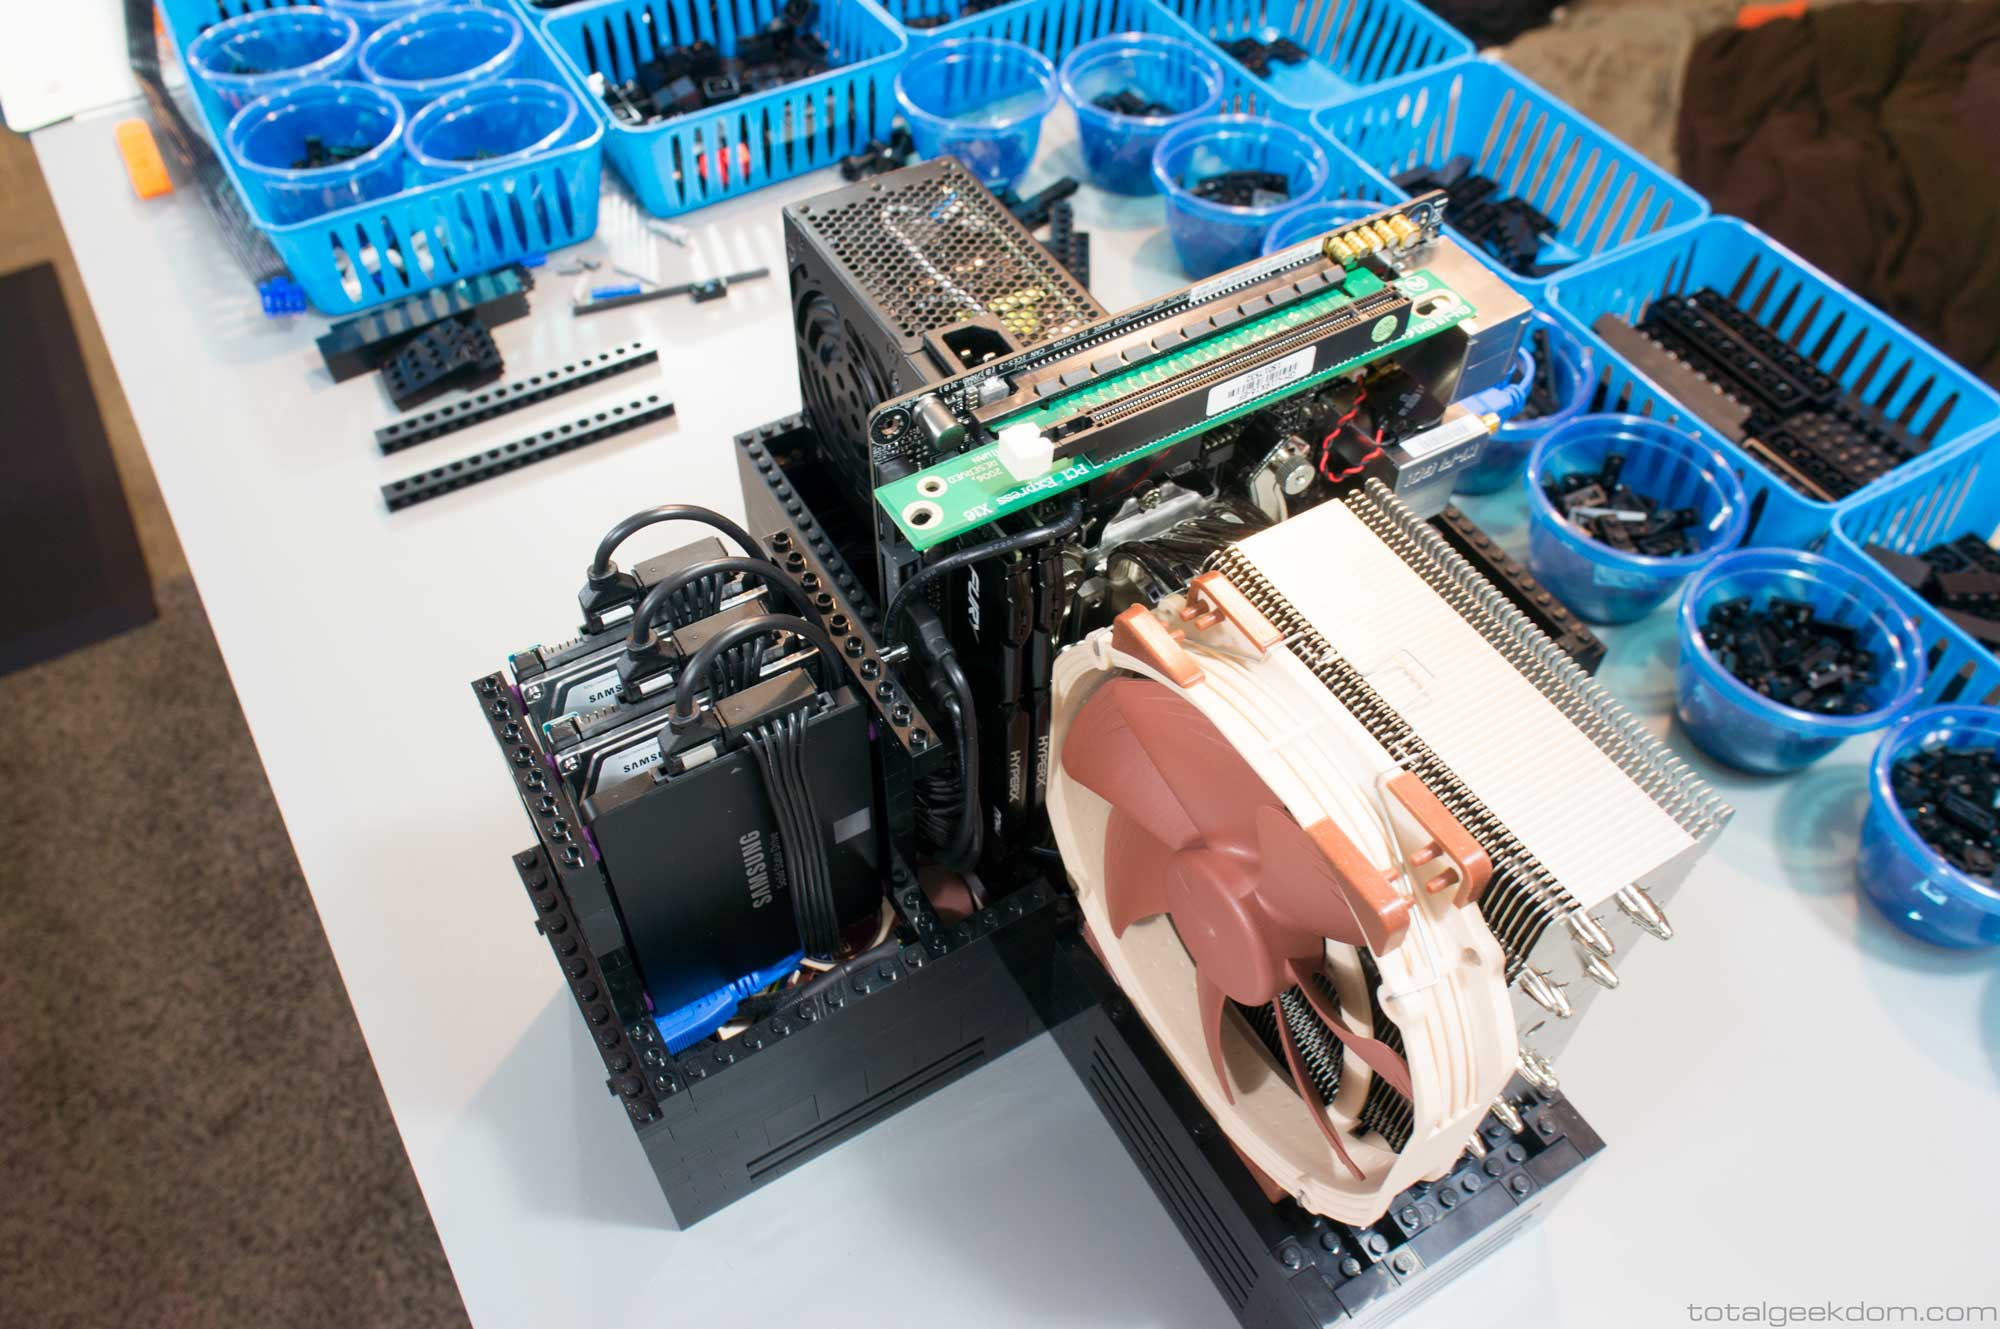 There's space for three 2.5-inch drives.